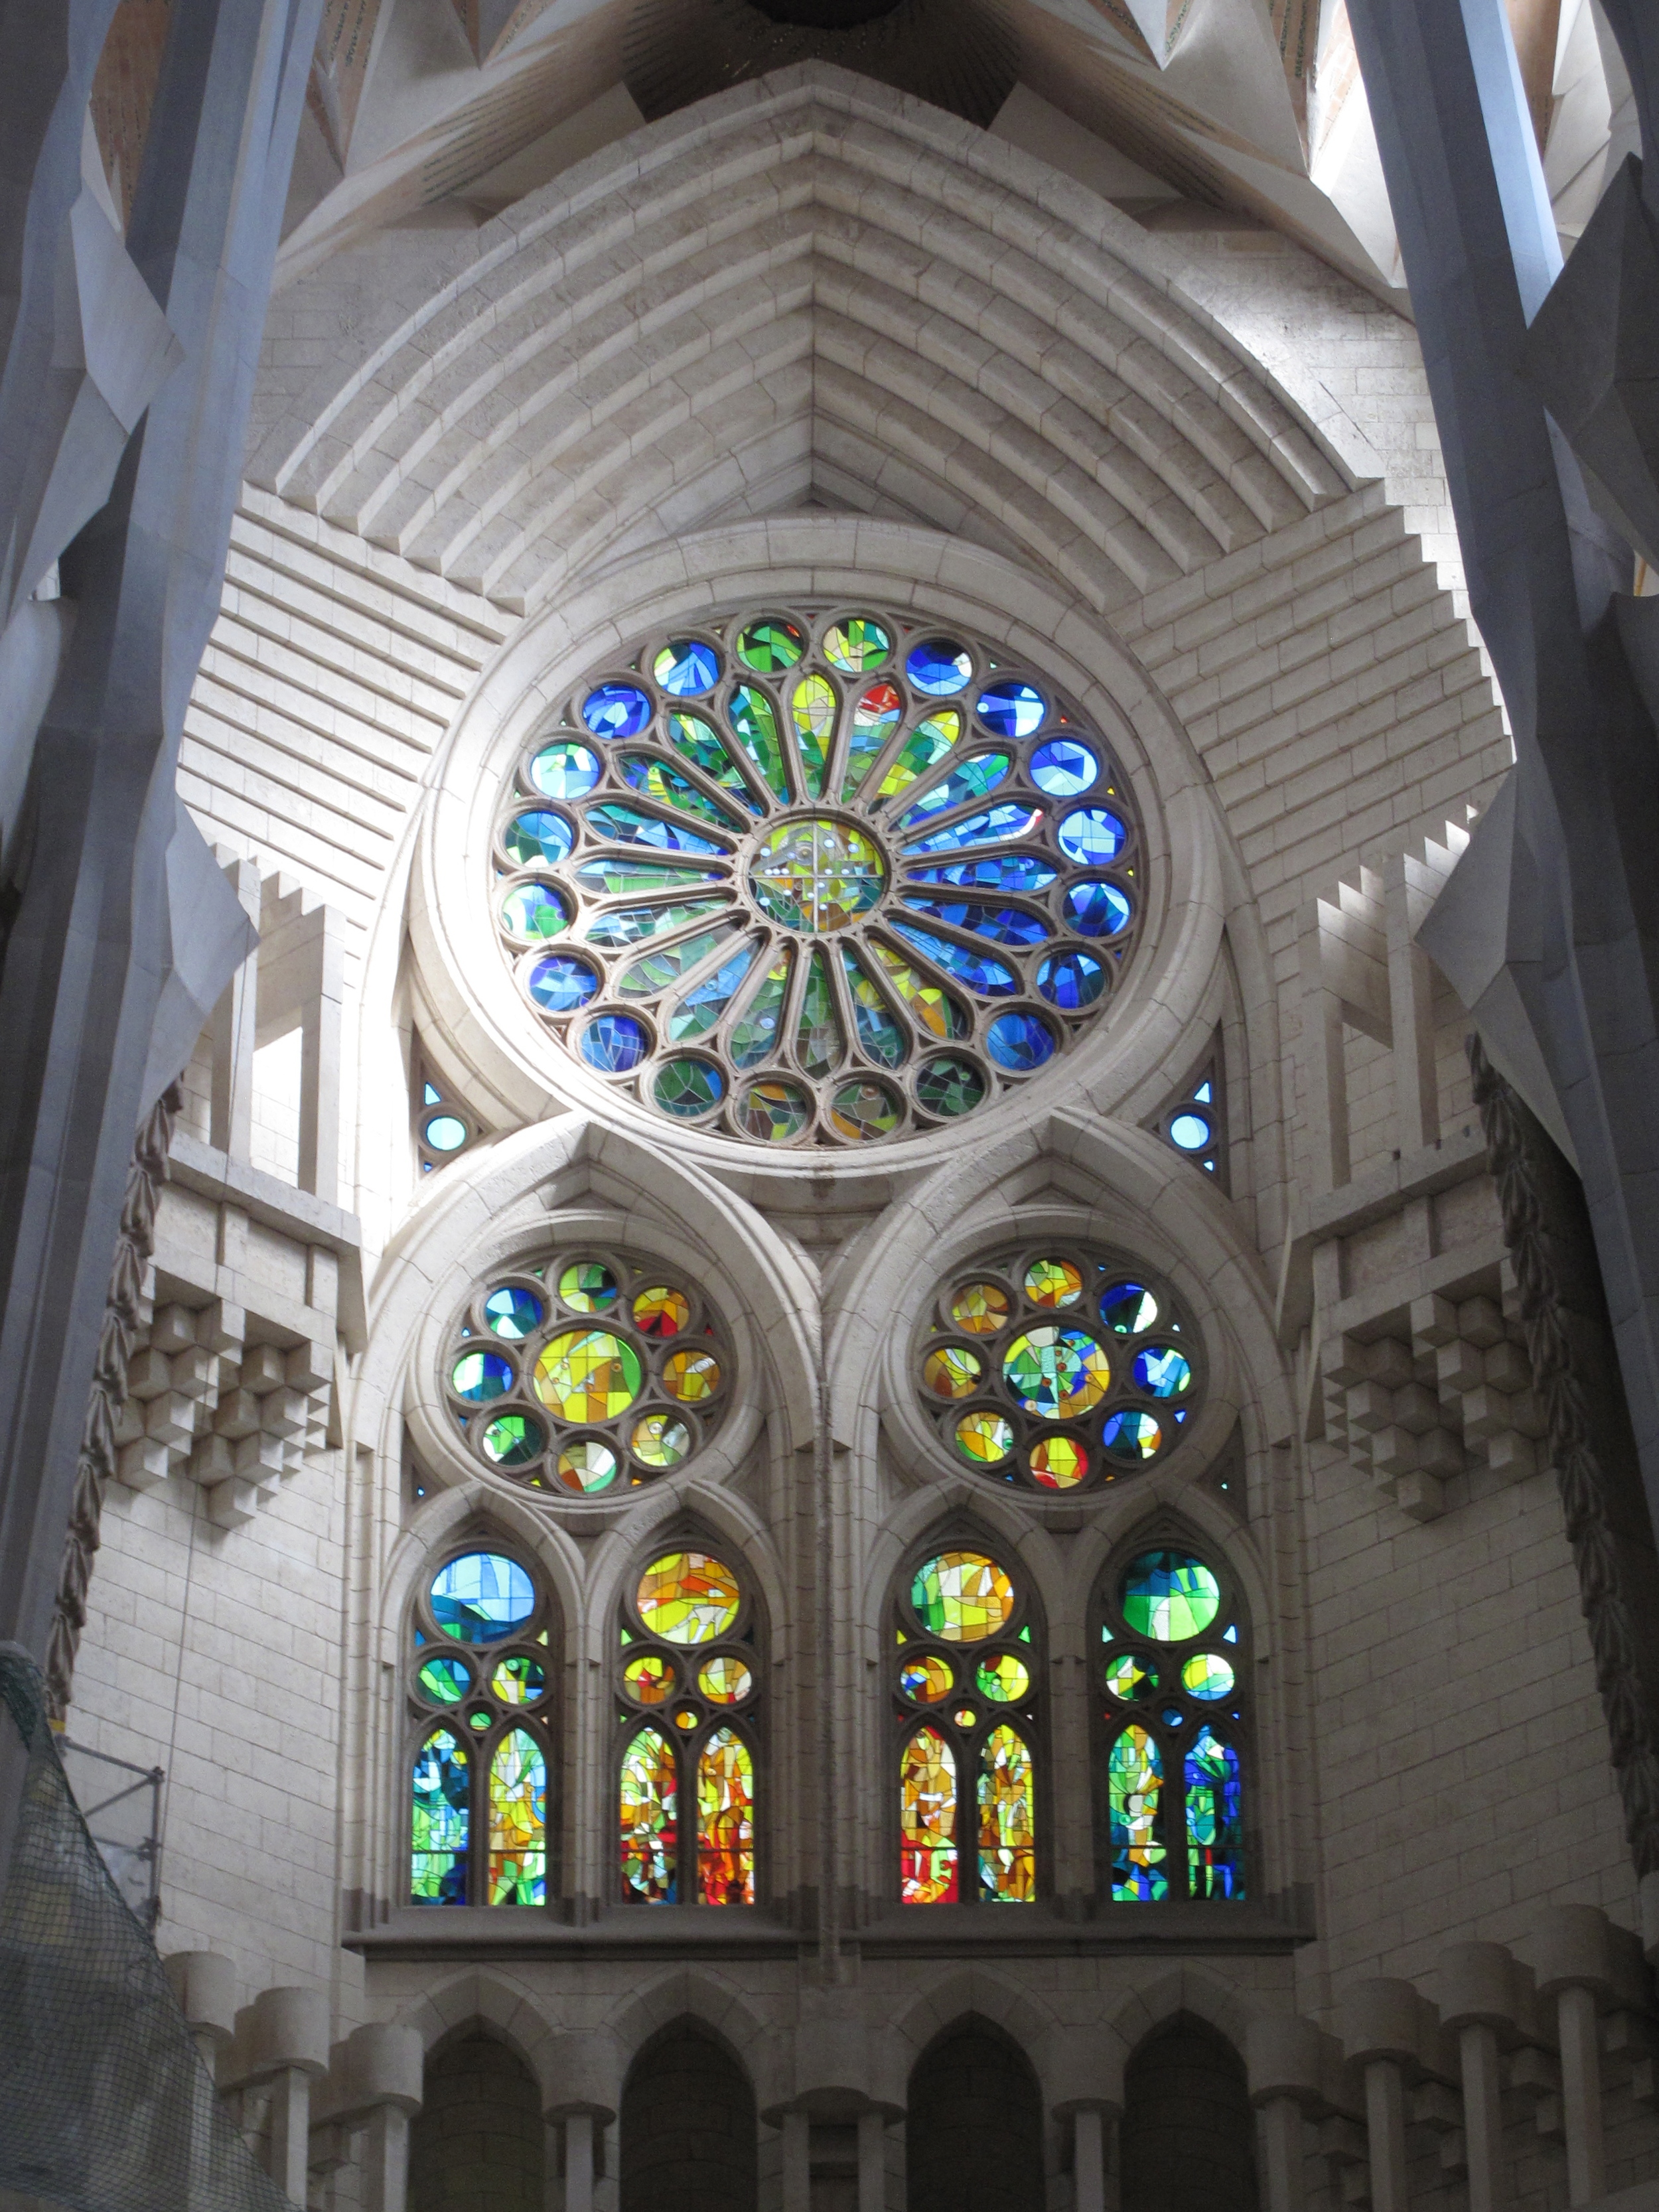 Stained glass window inside Sagrada Familia